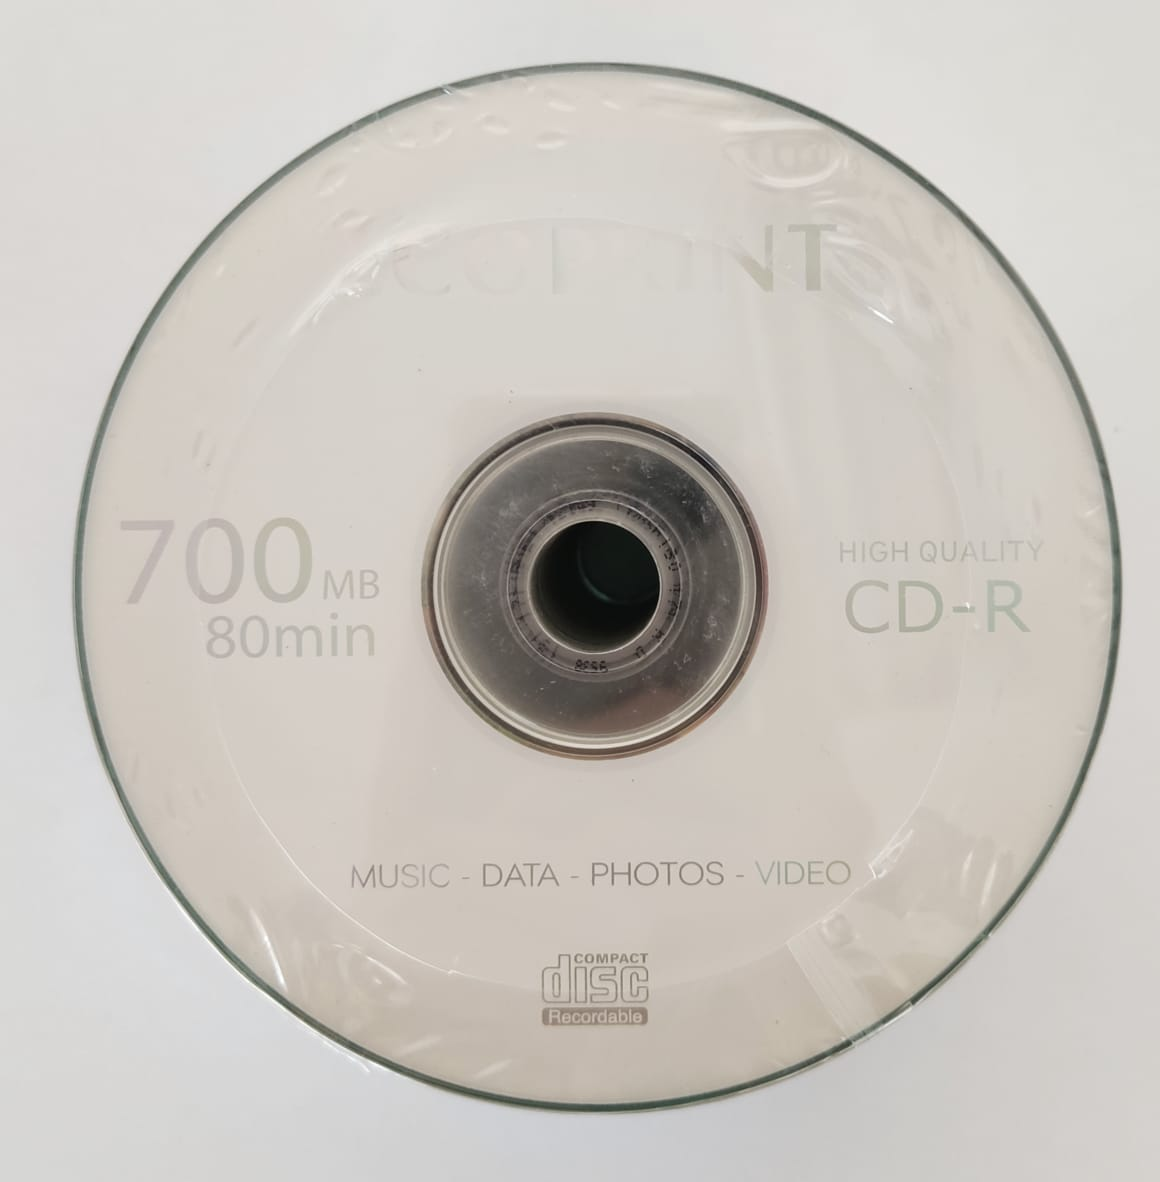 CD-R Virgem Ecoprint 700mb com Logo - 50 unidades